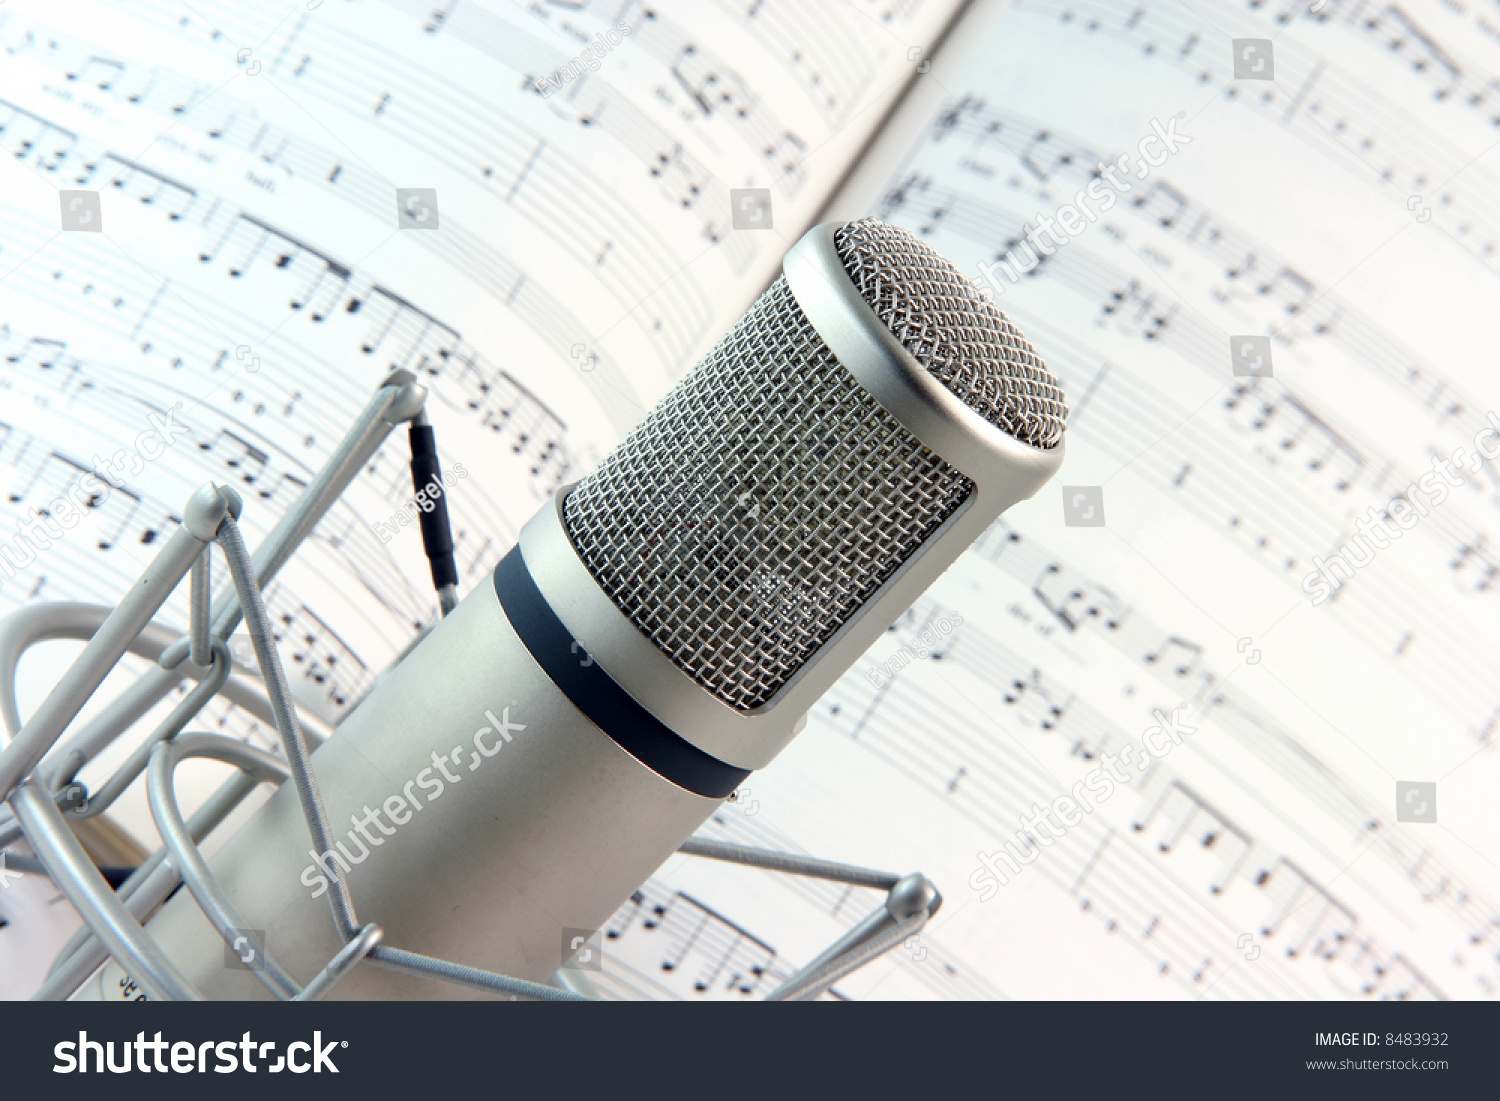 Lyrics Background Music Recording Microphone Studio Stockfoto Jetzt